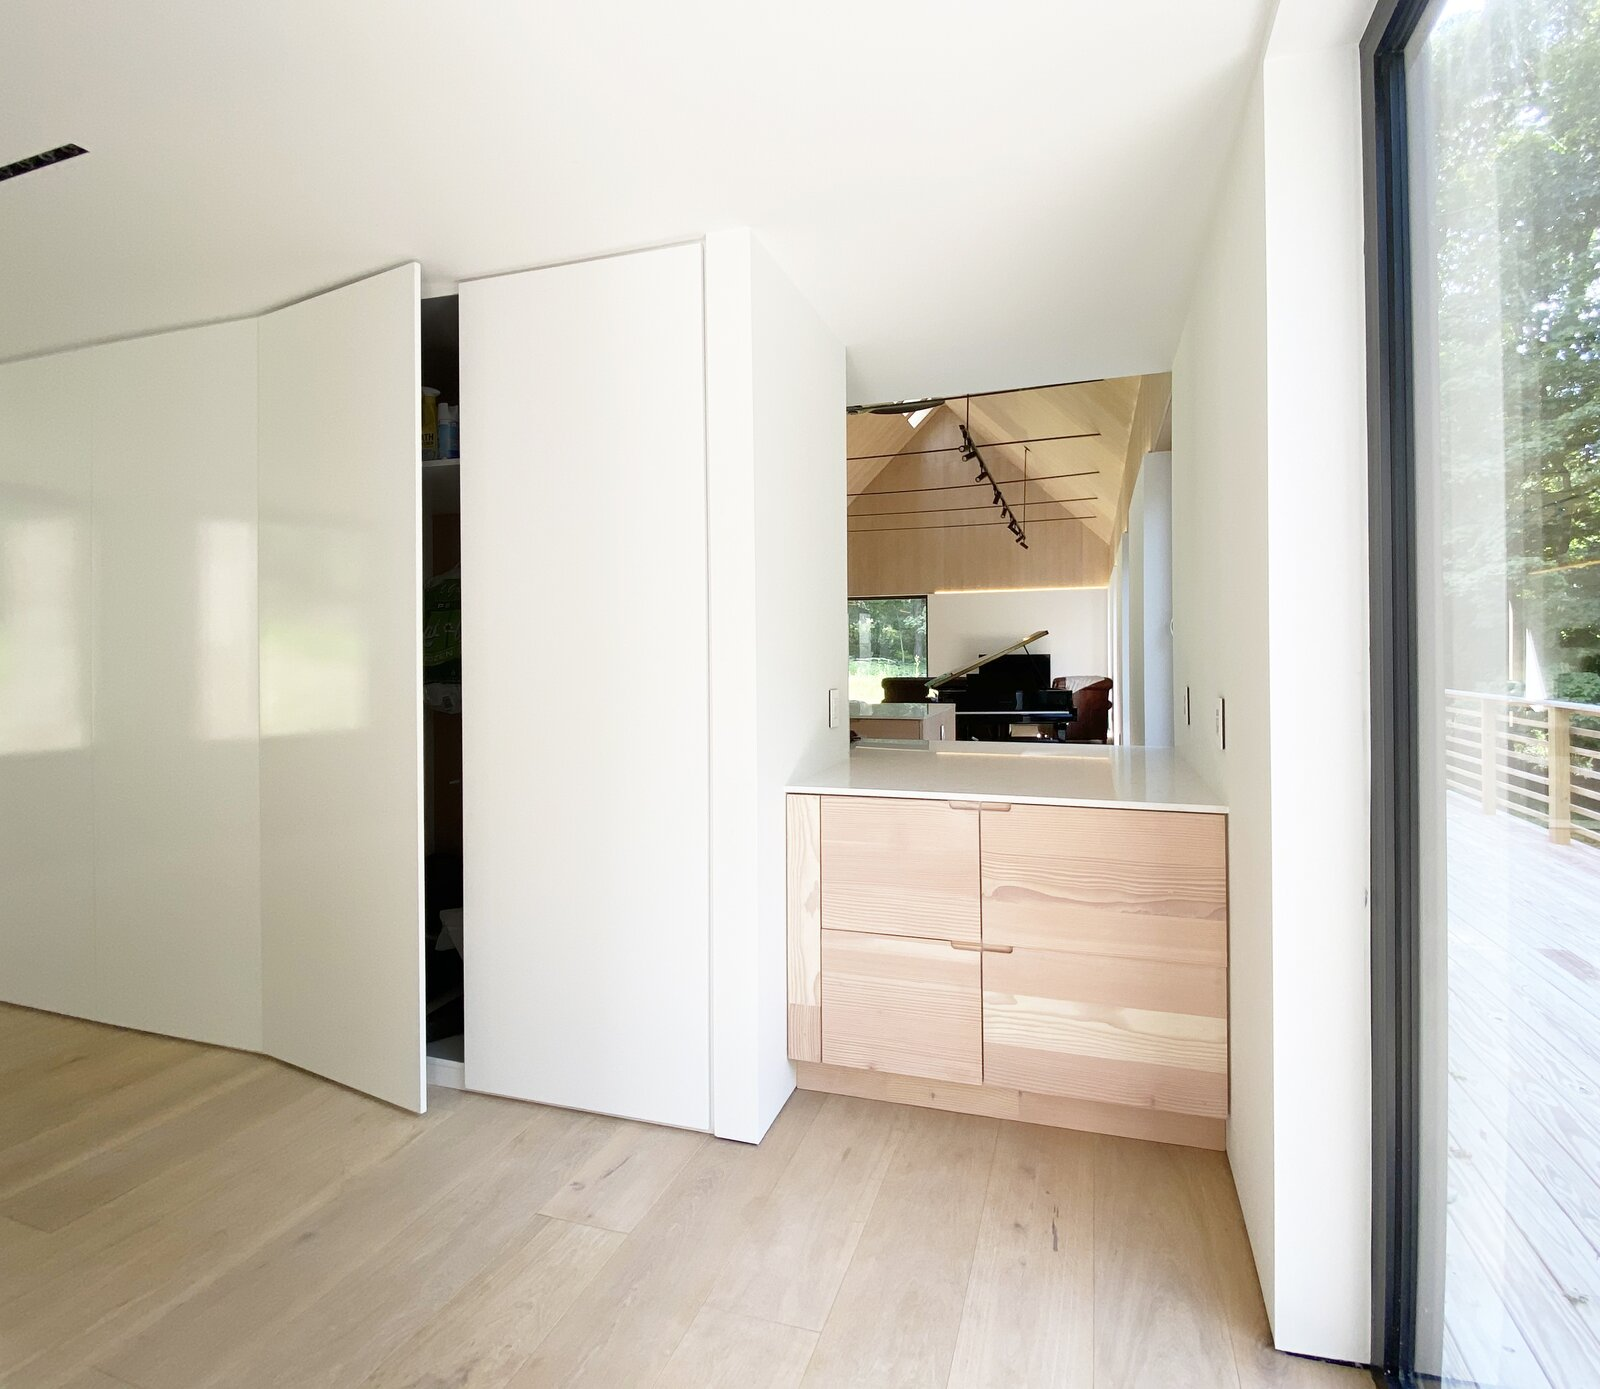 Storage Room, Closet Storage Type, and Cabinet Storage Type View upon entry  Cork Haven by Multitude Studio